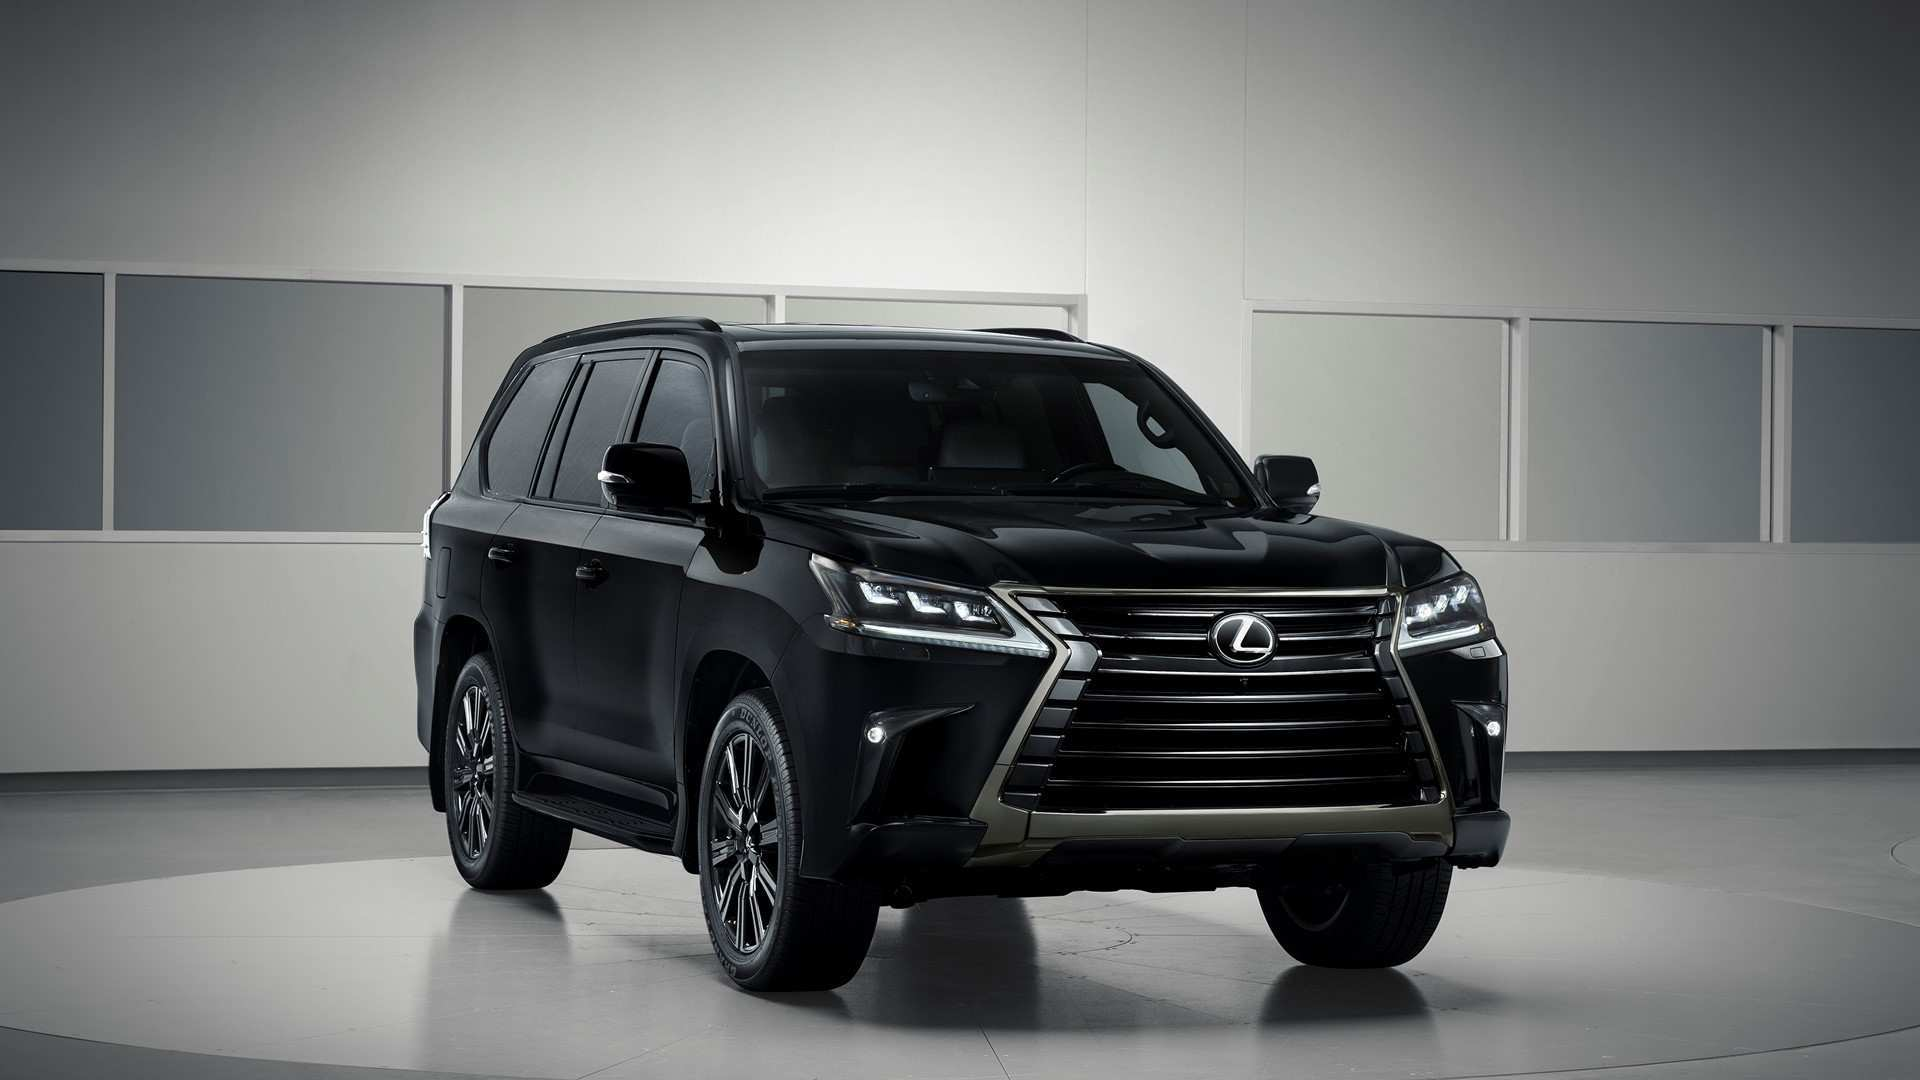 95 The Lexus Lx 570 Black Edition 2020 Performance and New Engine with Lexus Lx 570 Black Edition 2020